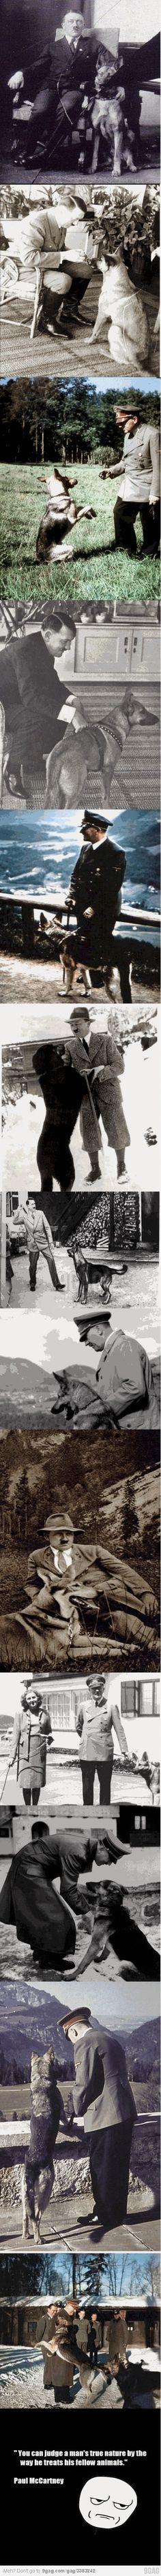 Stil applies: When Hitler wanted to commit suicide, he made his dogs take poison to see if it worked and it did. Bad, Bad, Bad man  Famous for all the wrong reasons!